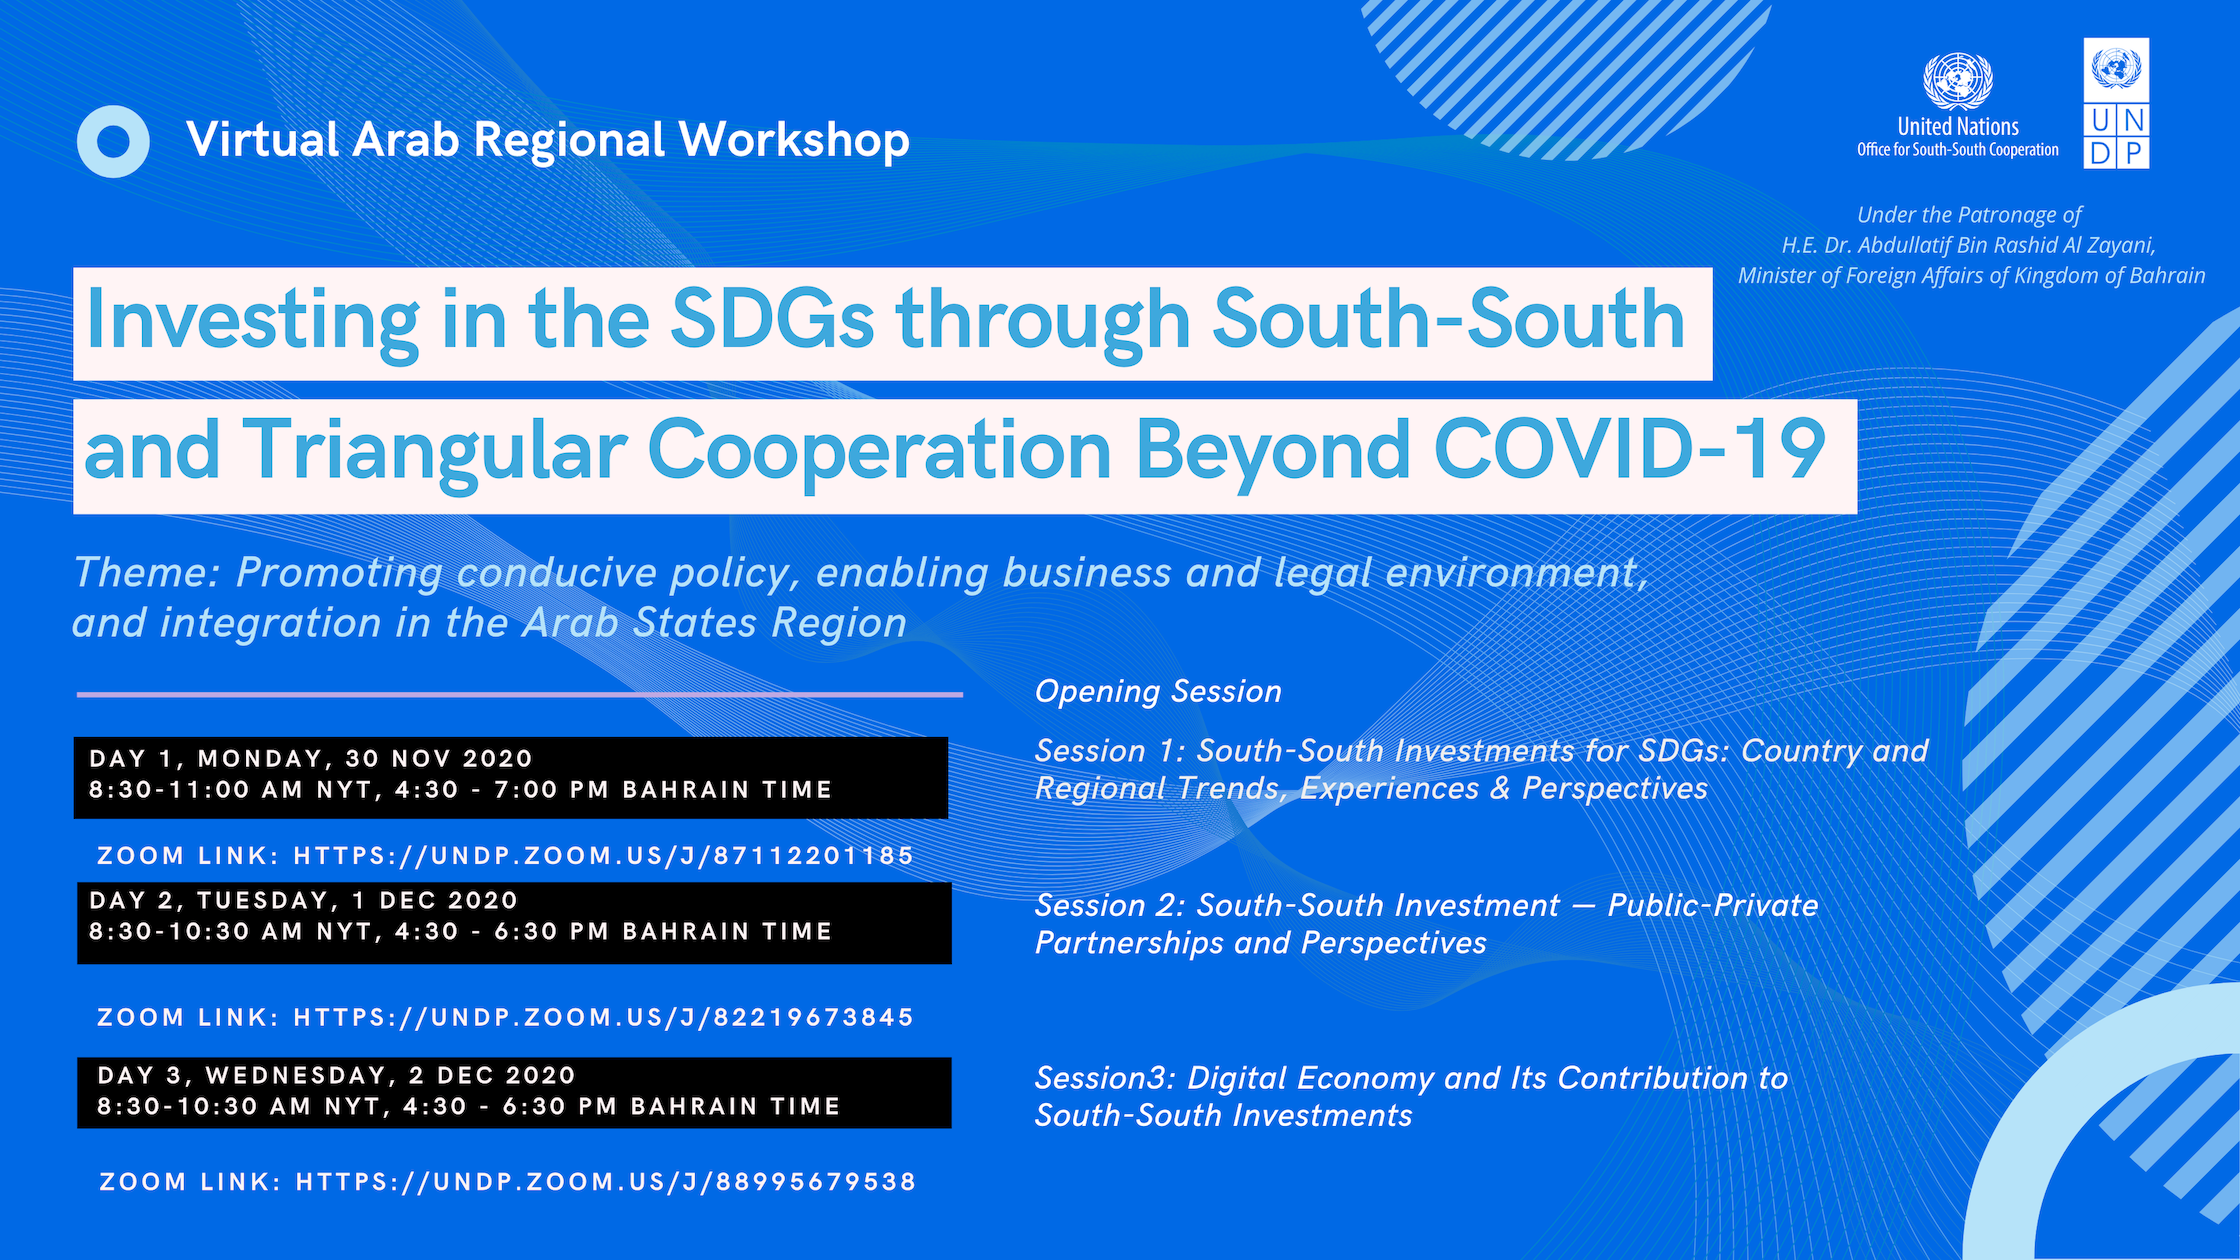 Virtual Arab Regional Workshop: Investing in the SDGs through South-South & Triangular Cooperation Beyond Covid-19